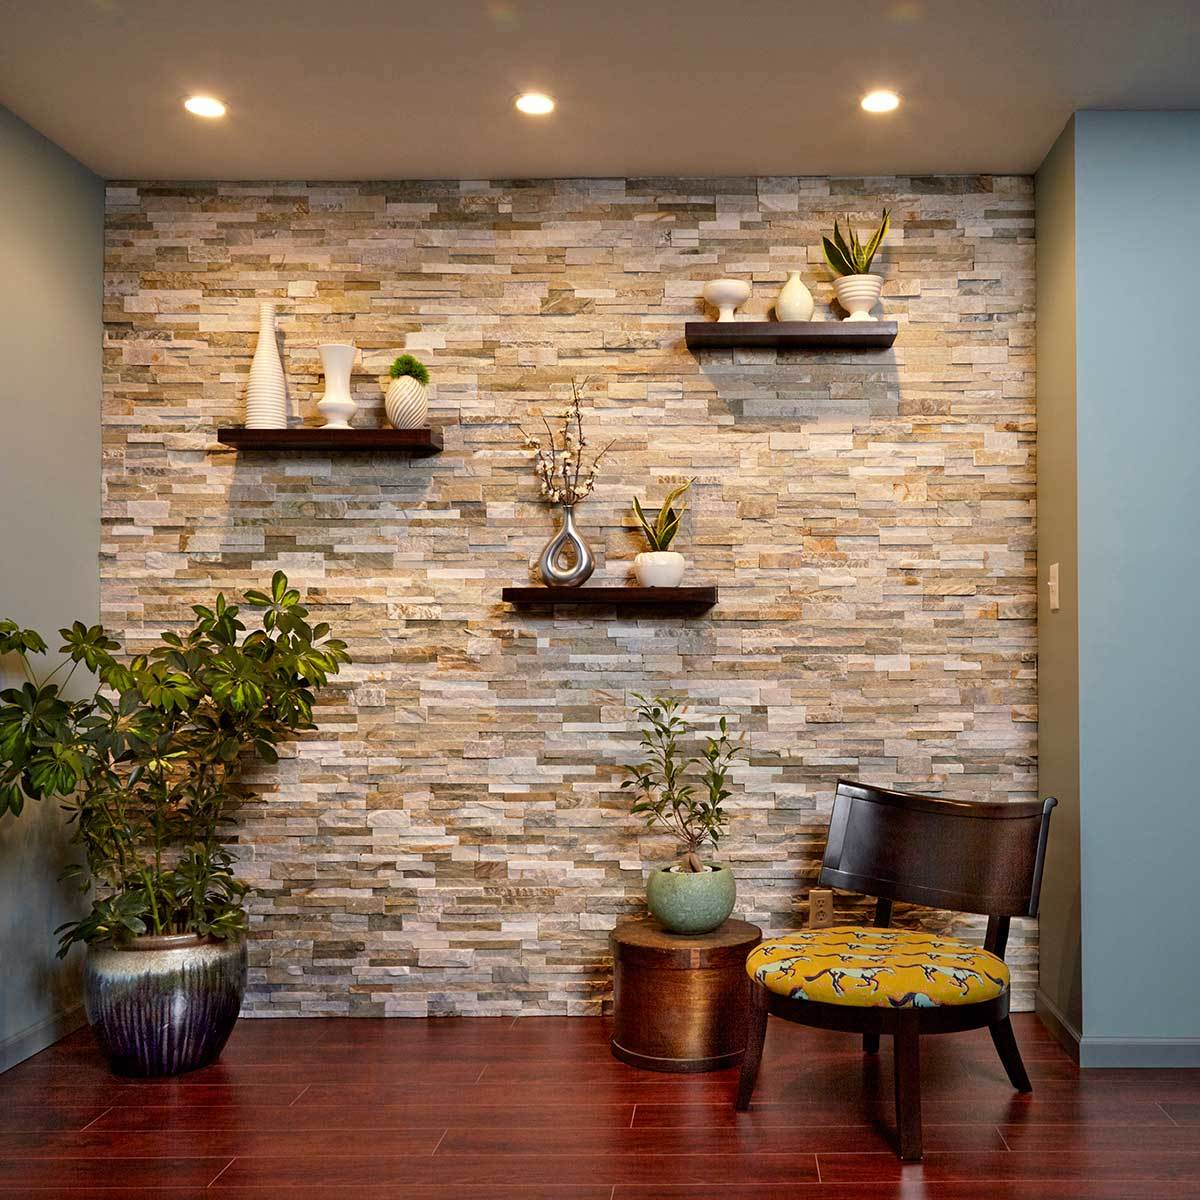 35 Accent Wall Ideas to Make Your Home More Stunning